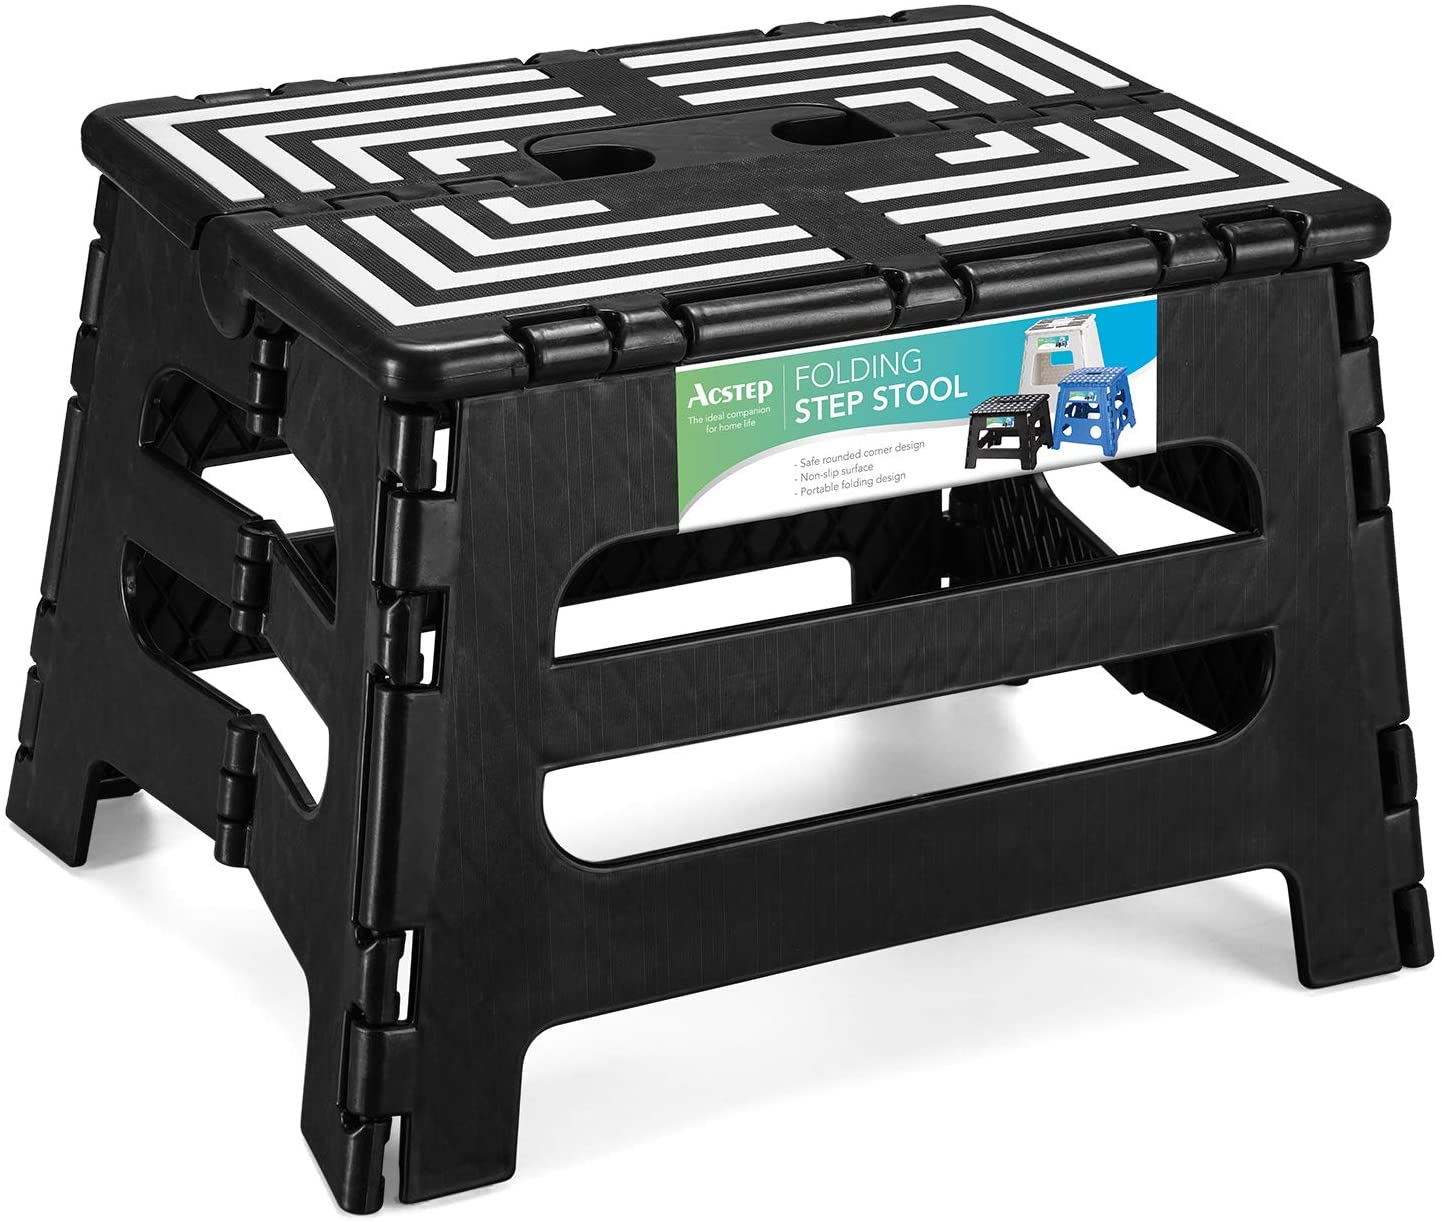 Acstep Folding Step Stool 9 Inches Lightweight Small Foldable Step Stool For Kids And Adults Non Slip Stepping Foot Stools For Kitchen Bathroom Bedroom Black Walmart Com Walmart Com